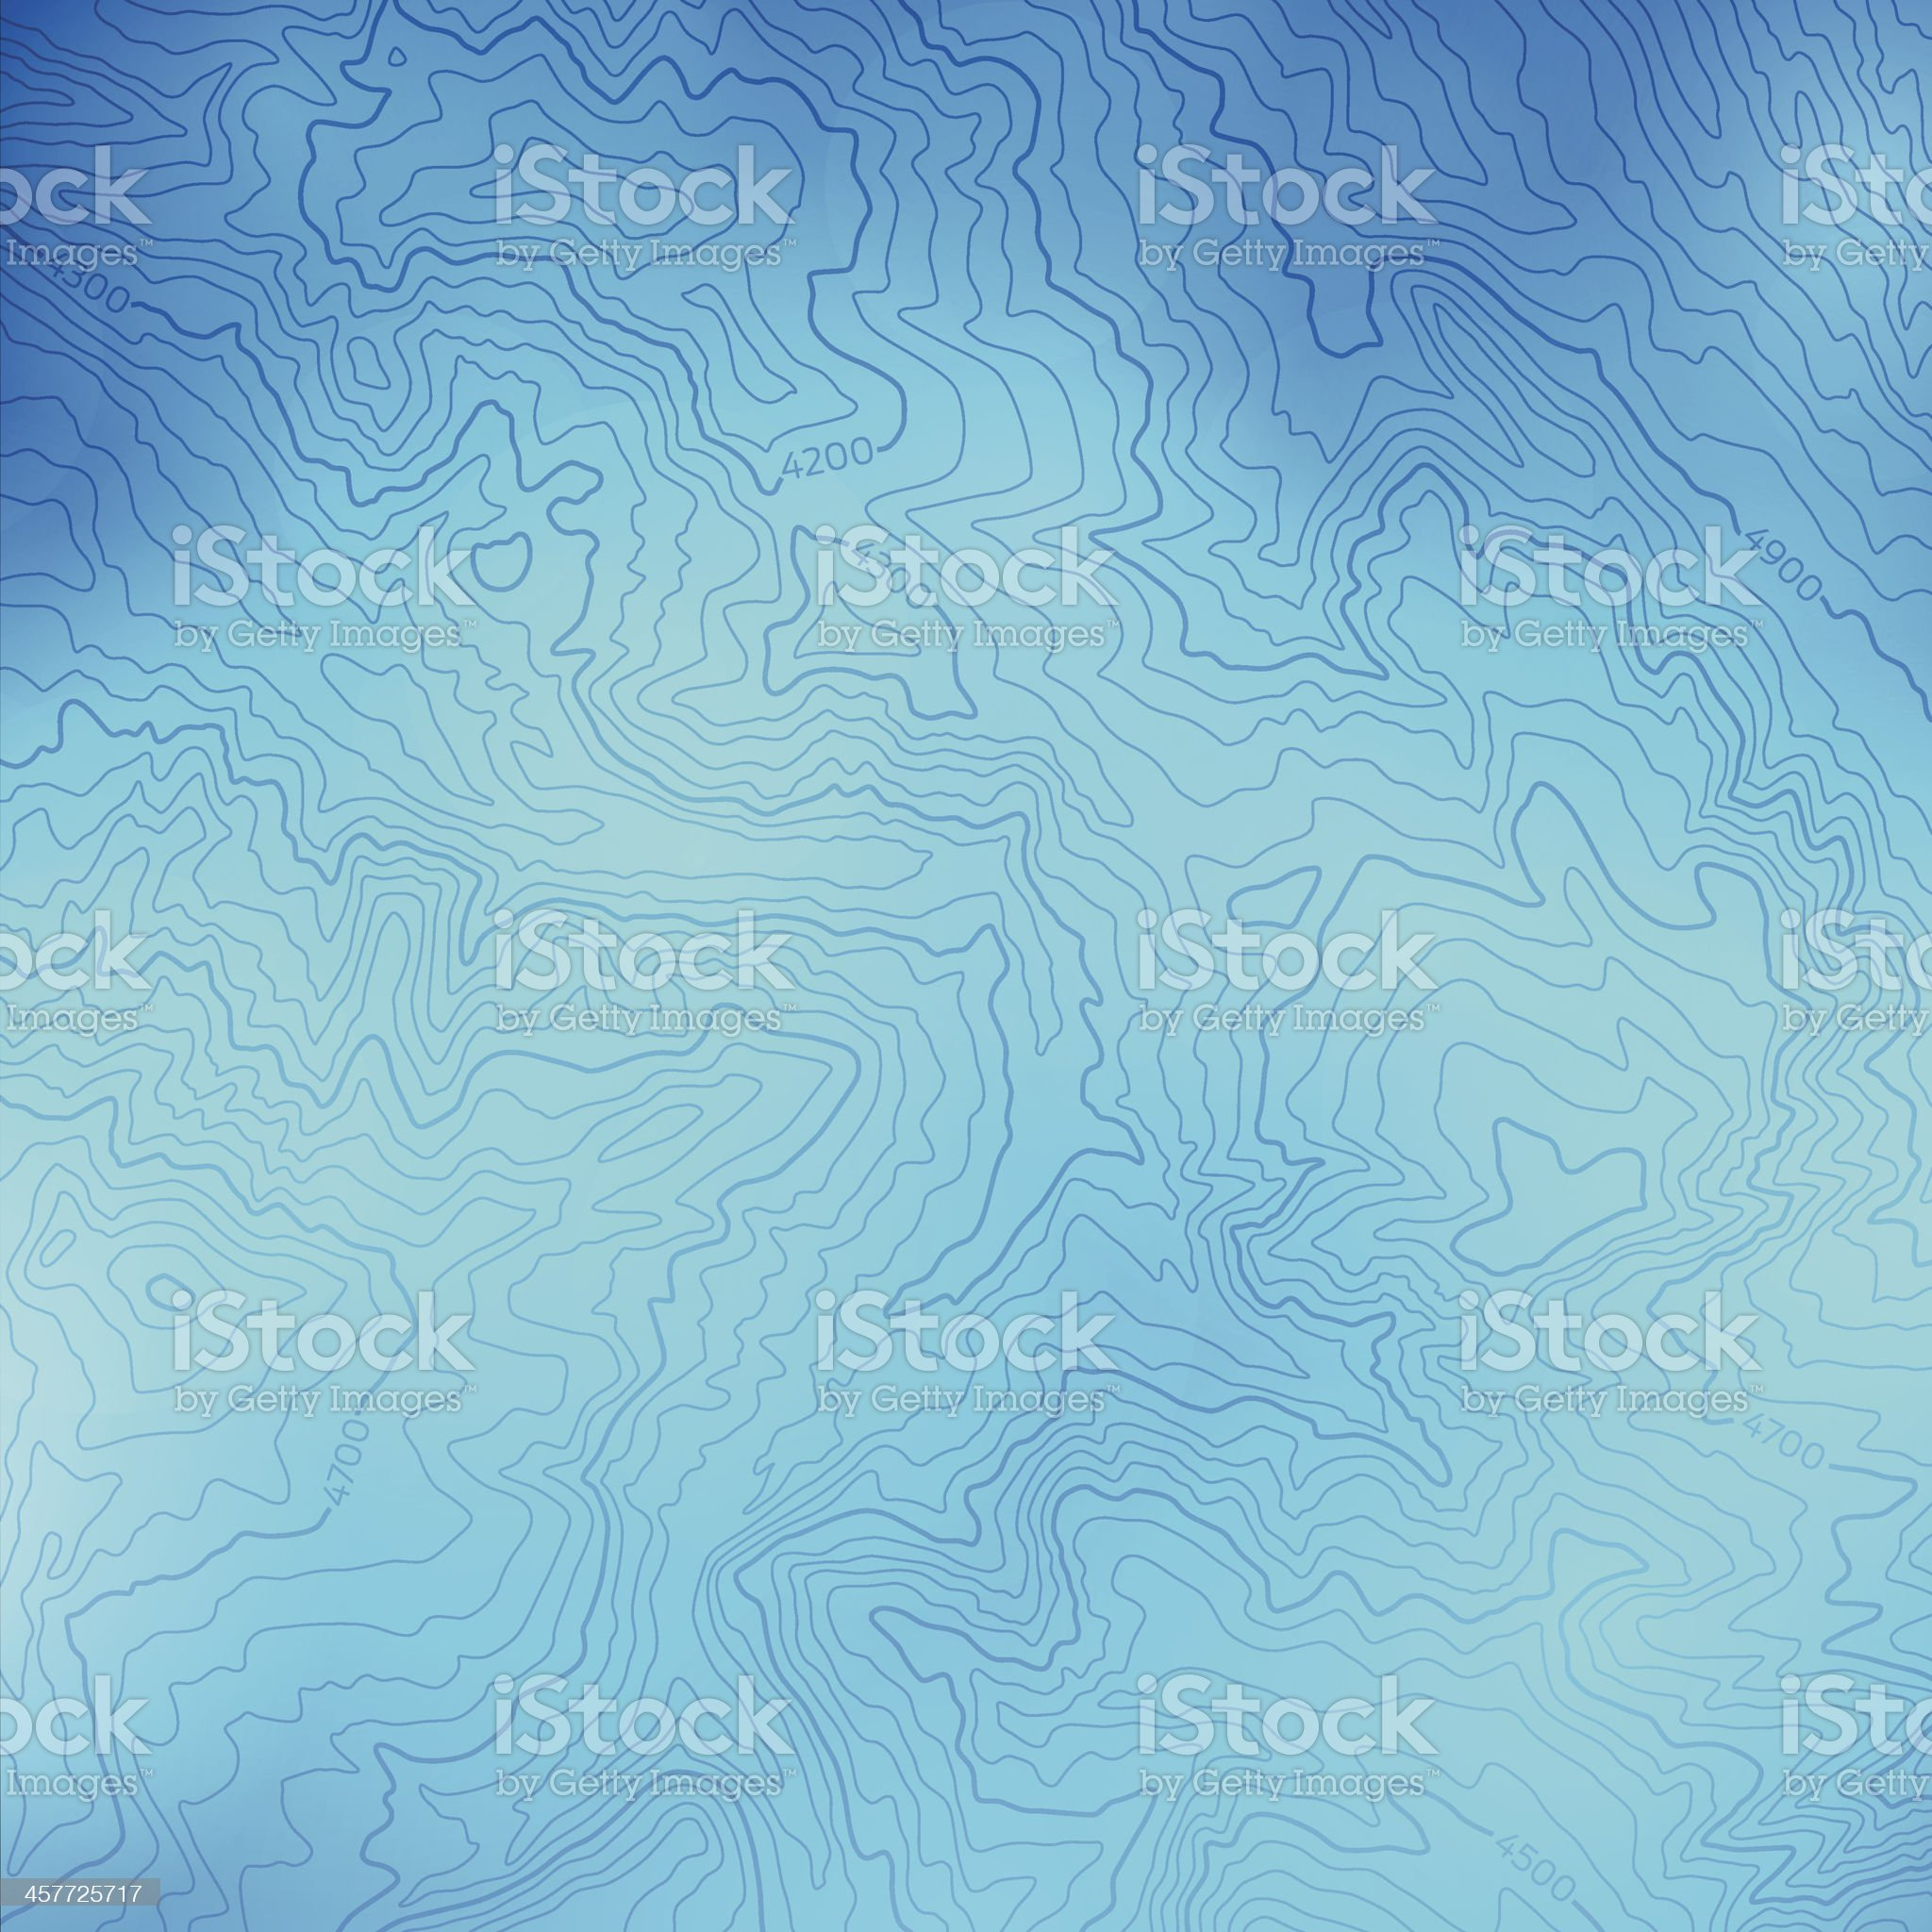 Blue Topographic Background royalty-free stock vector art